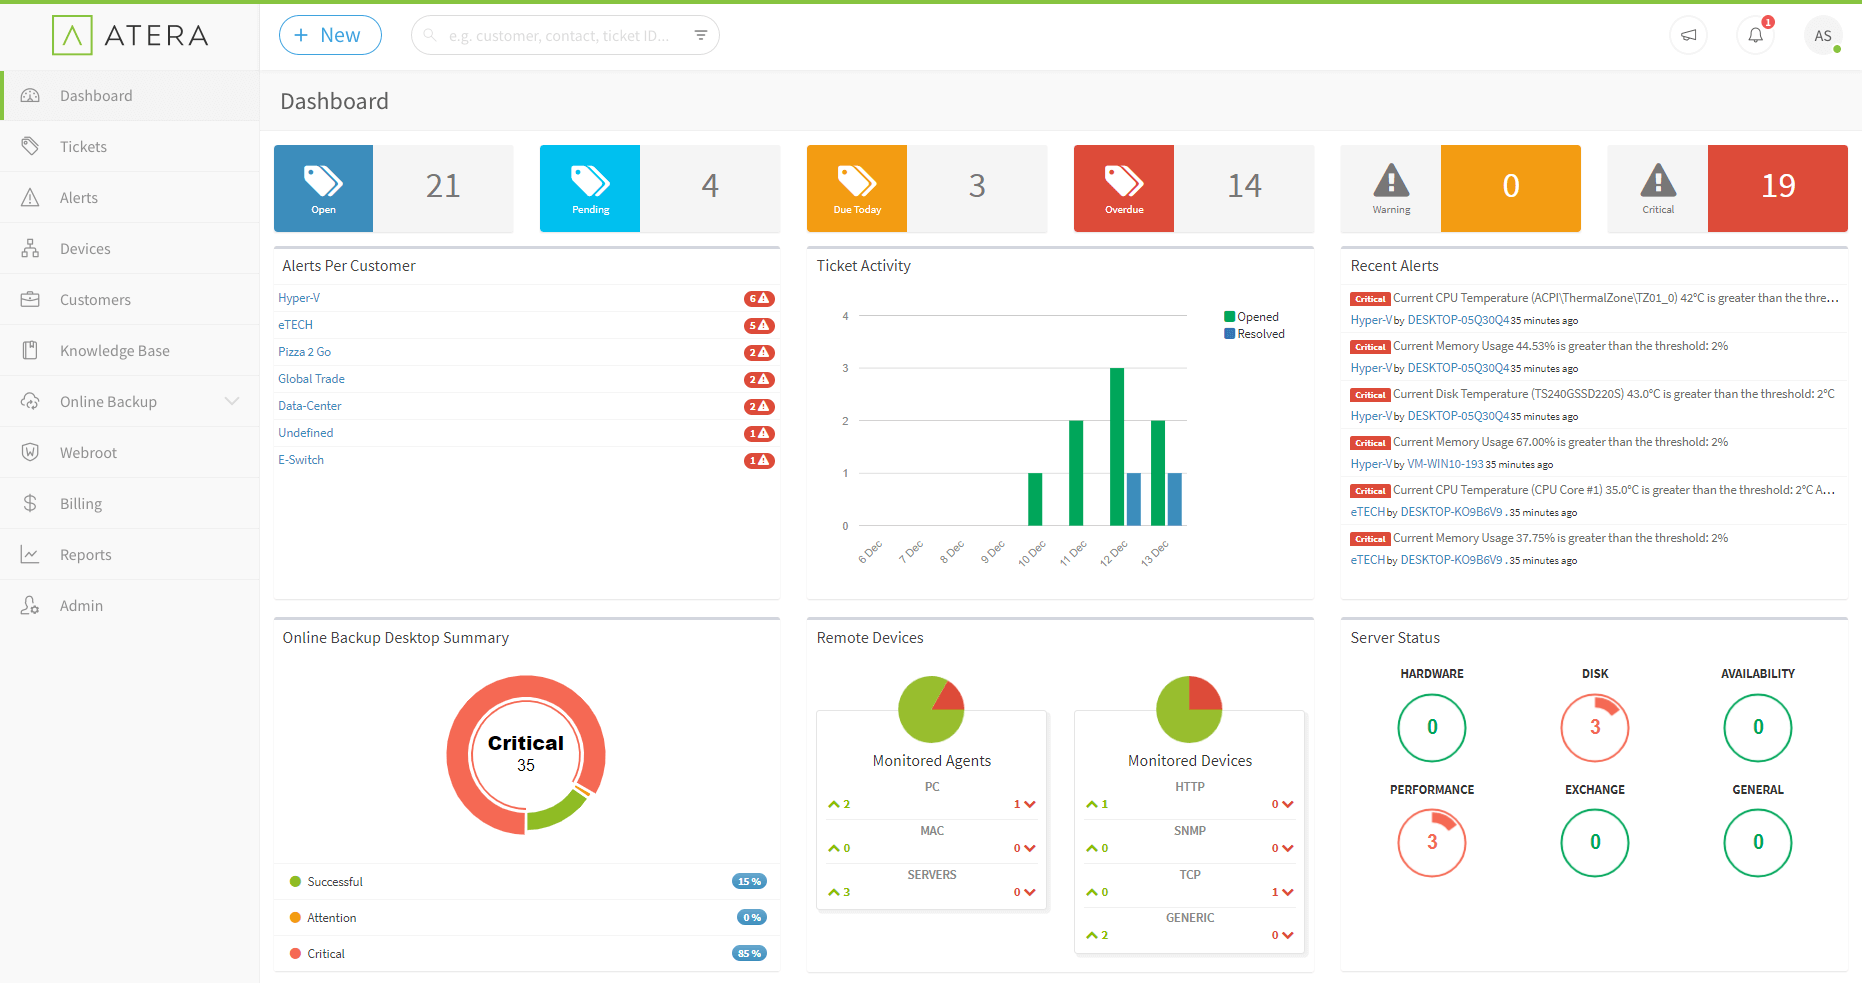 Pros & Cons of Atera: Analysis of a Leading IT Service